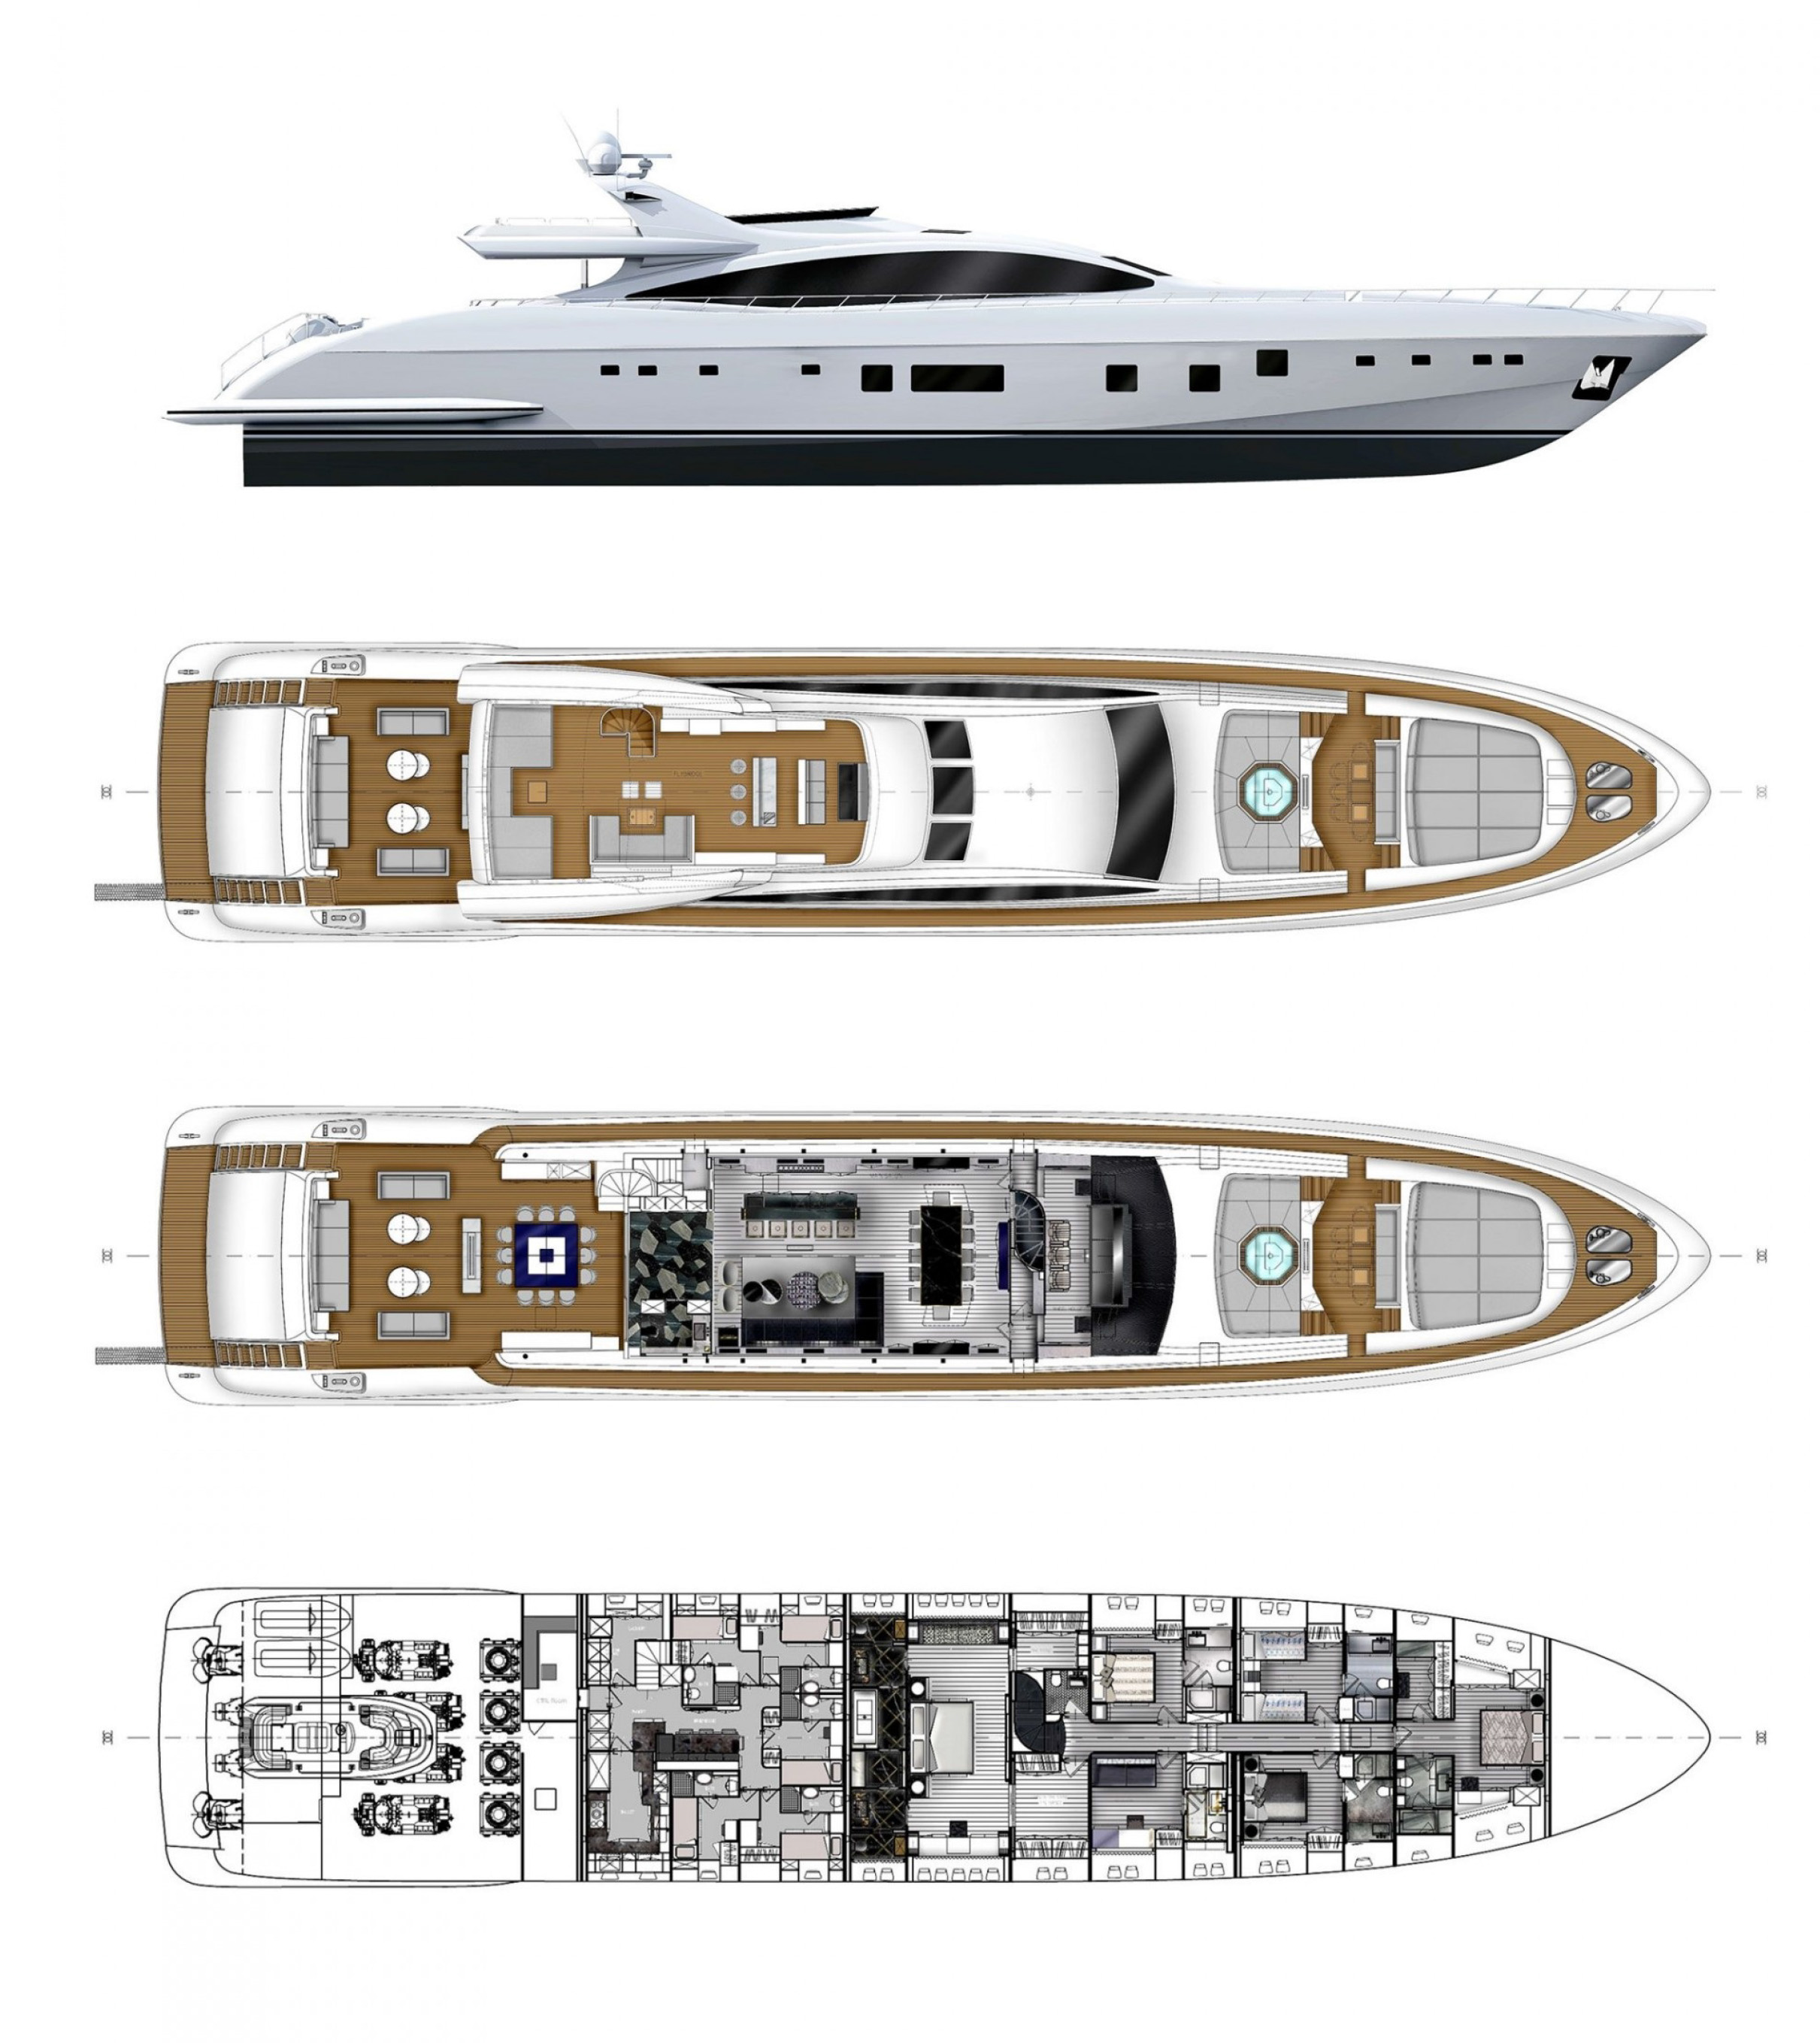 Yacht Incognito layout